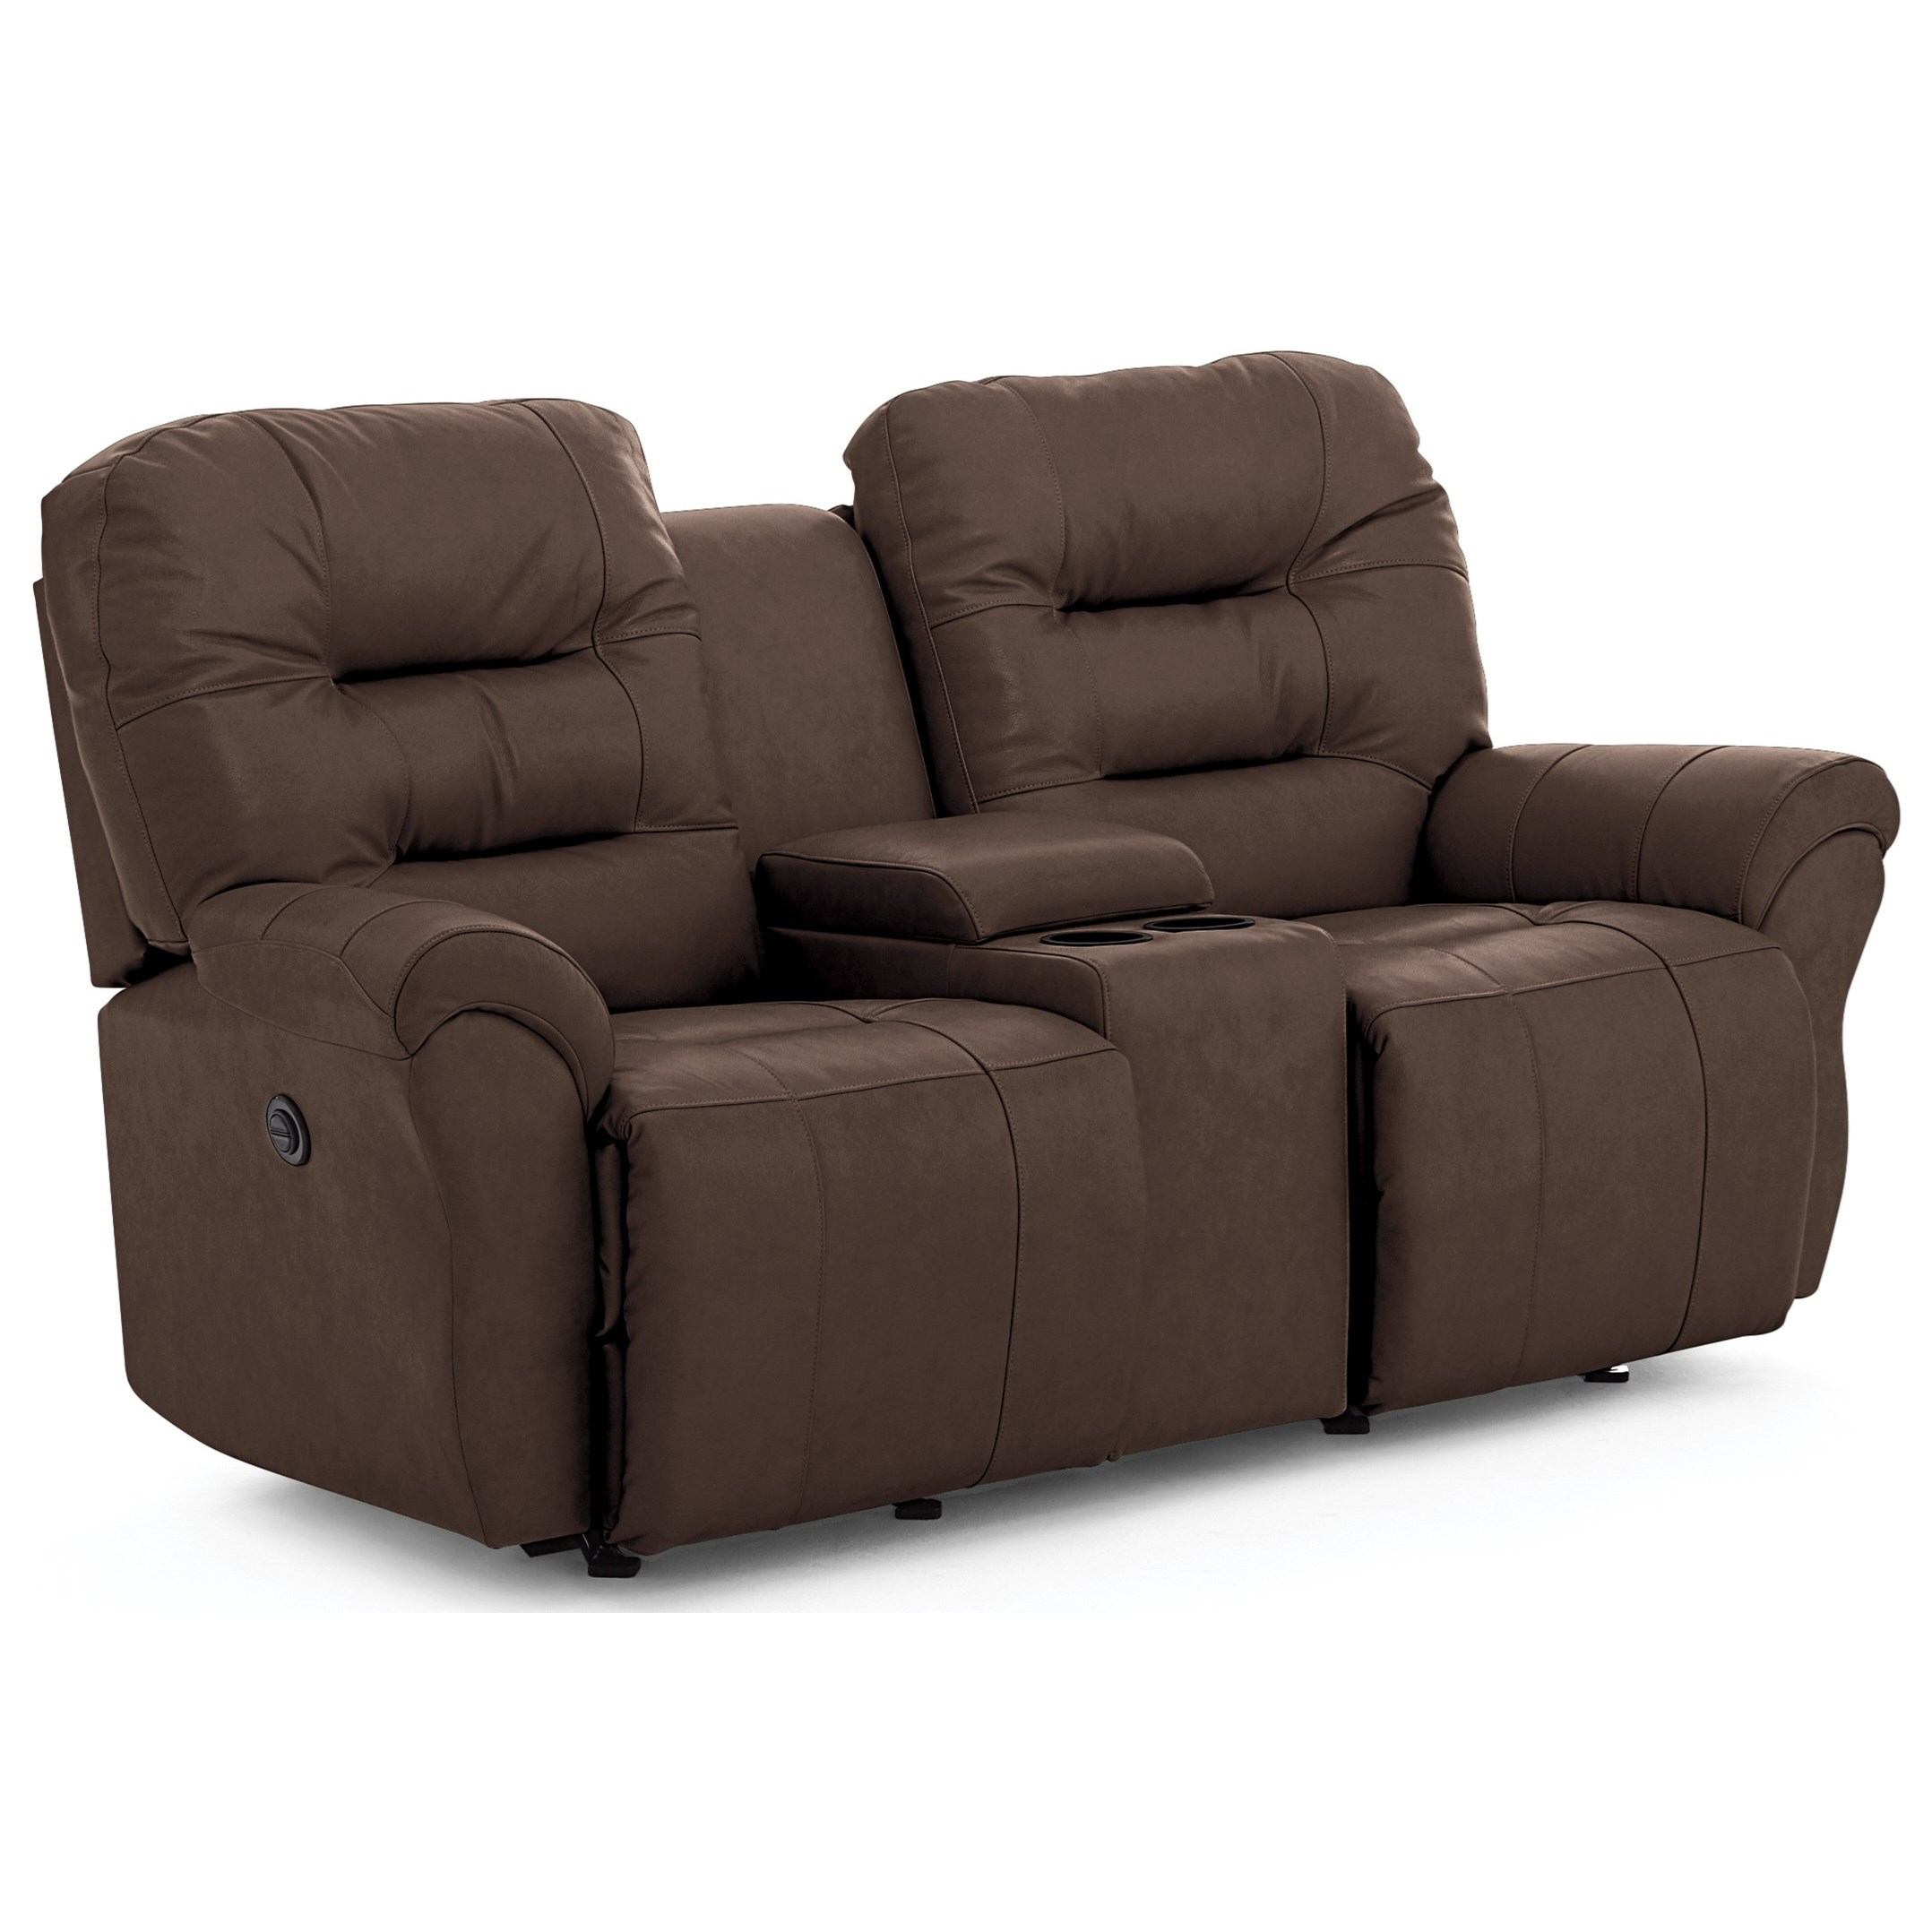 Unity Power Space Saver Console Loveseat Chaise by Best Home Furnishings at Baer's Furniture